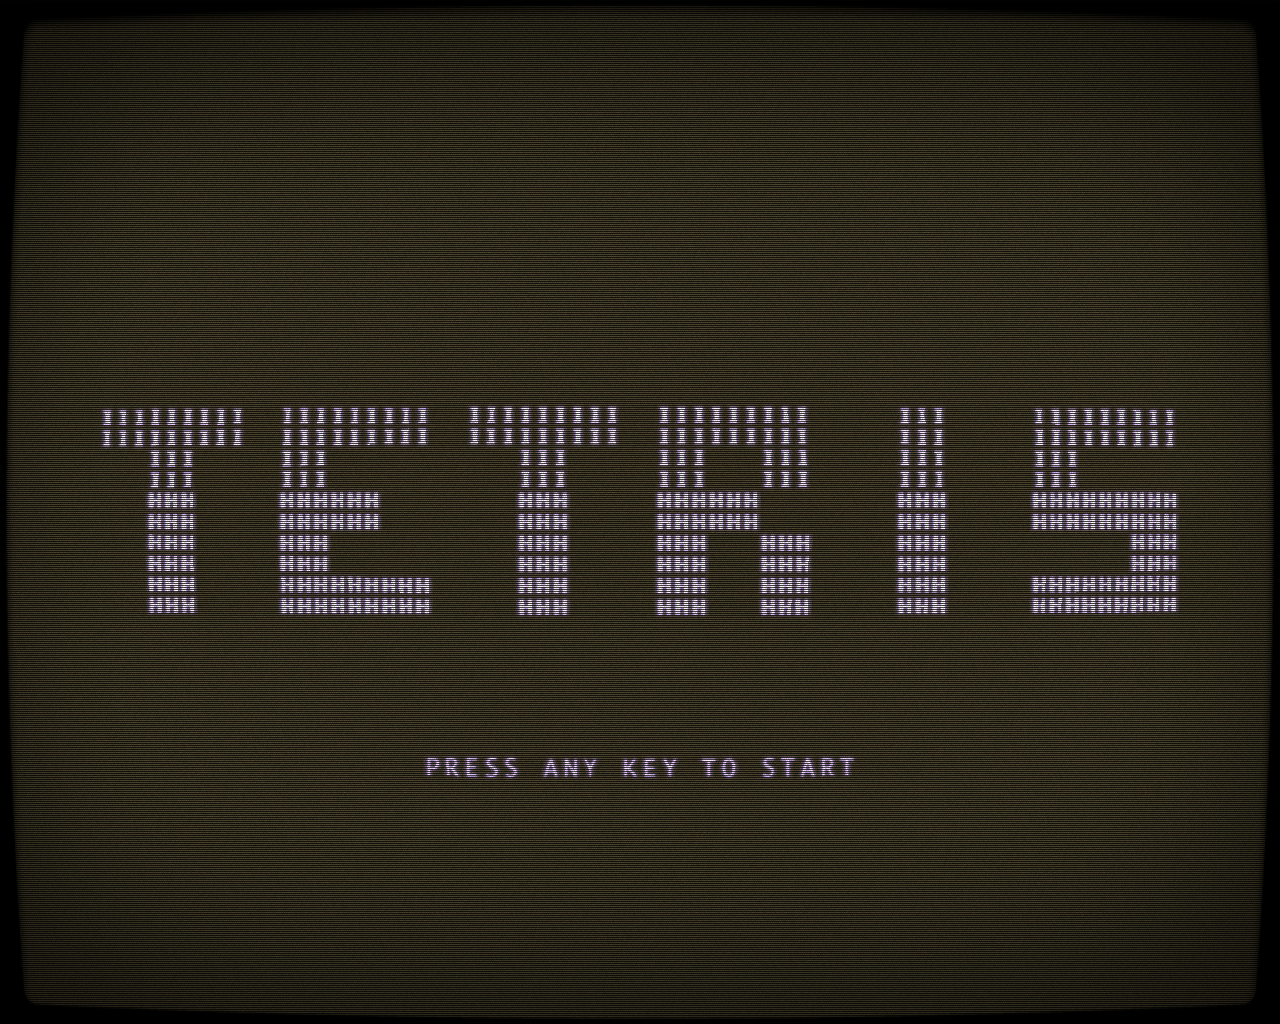 Tetris, one of the world's first videogames, turns 30 today.